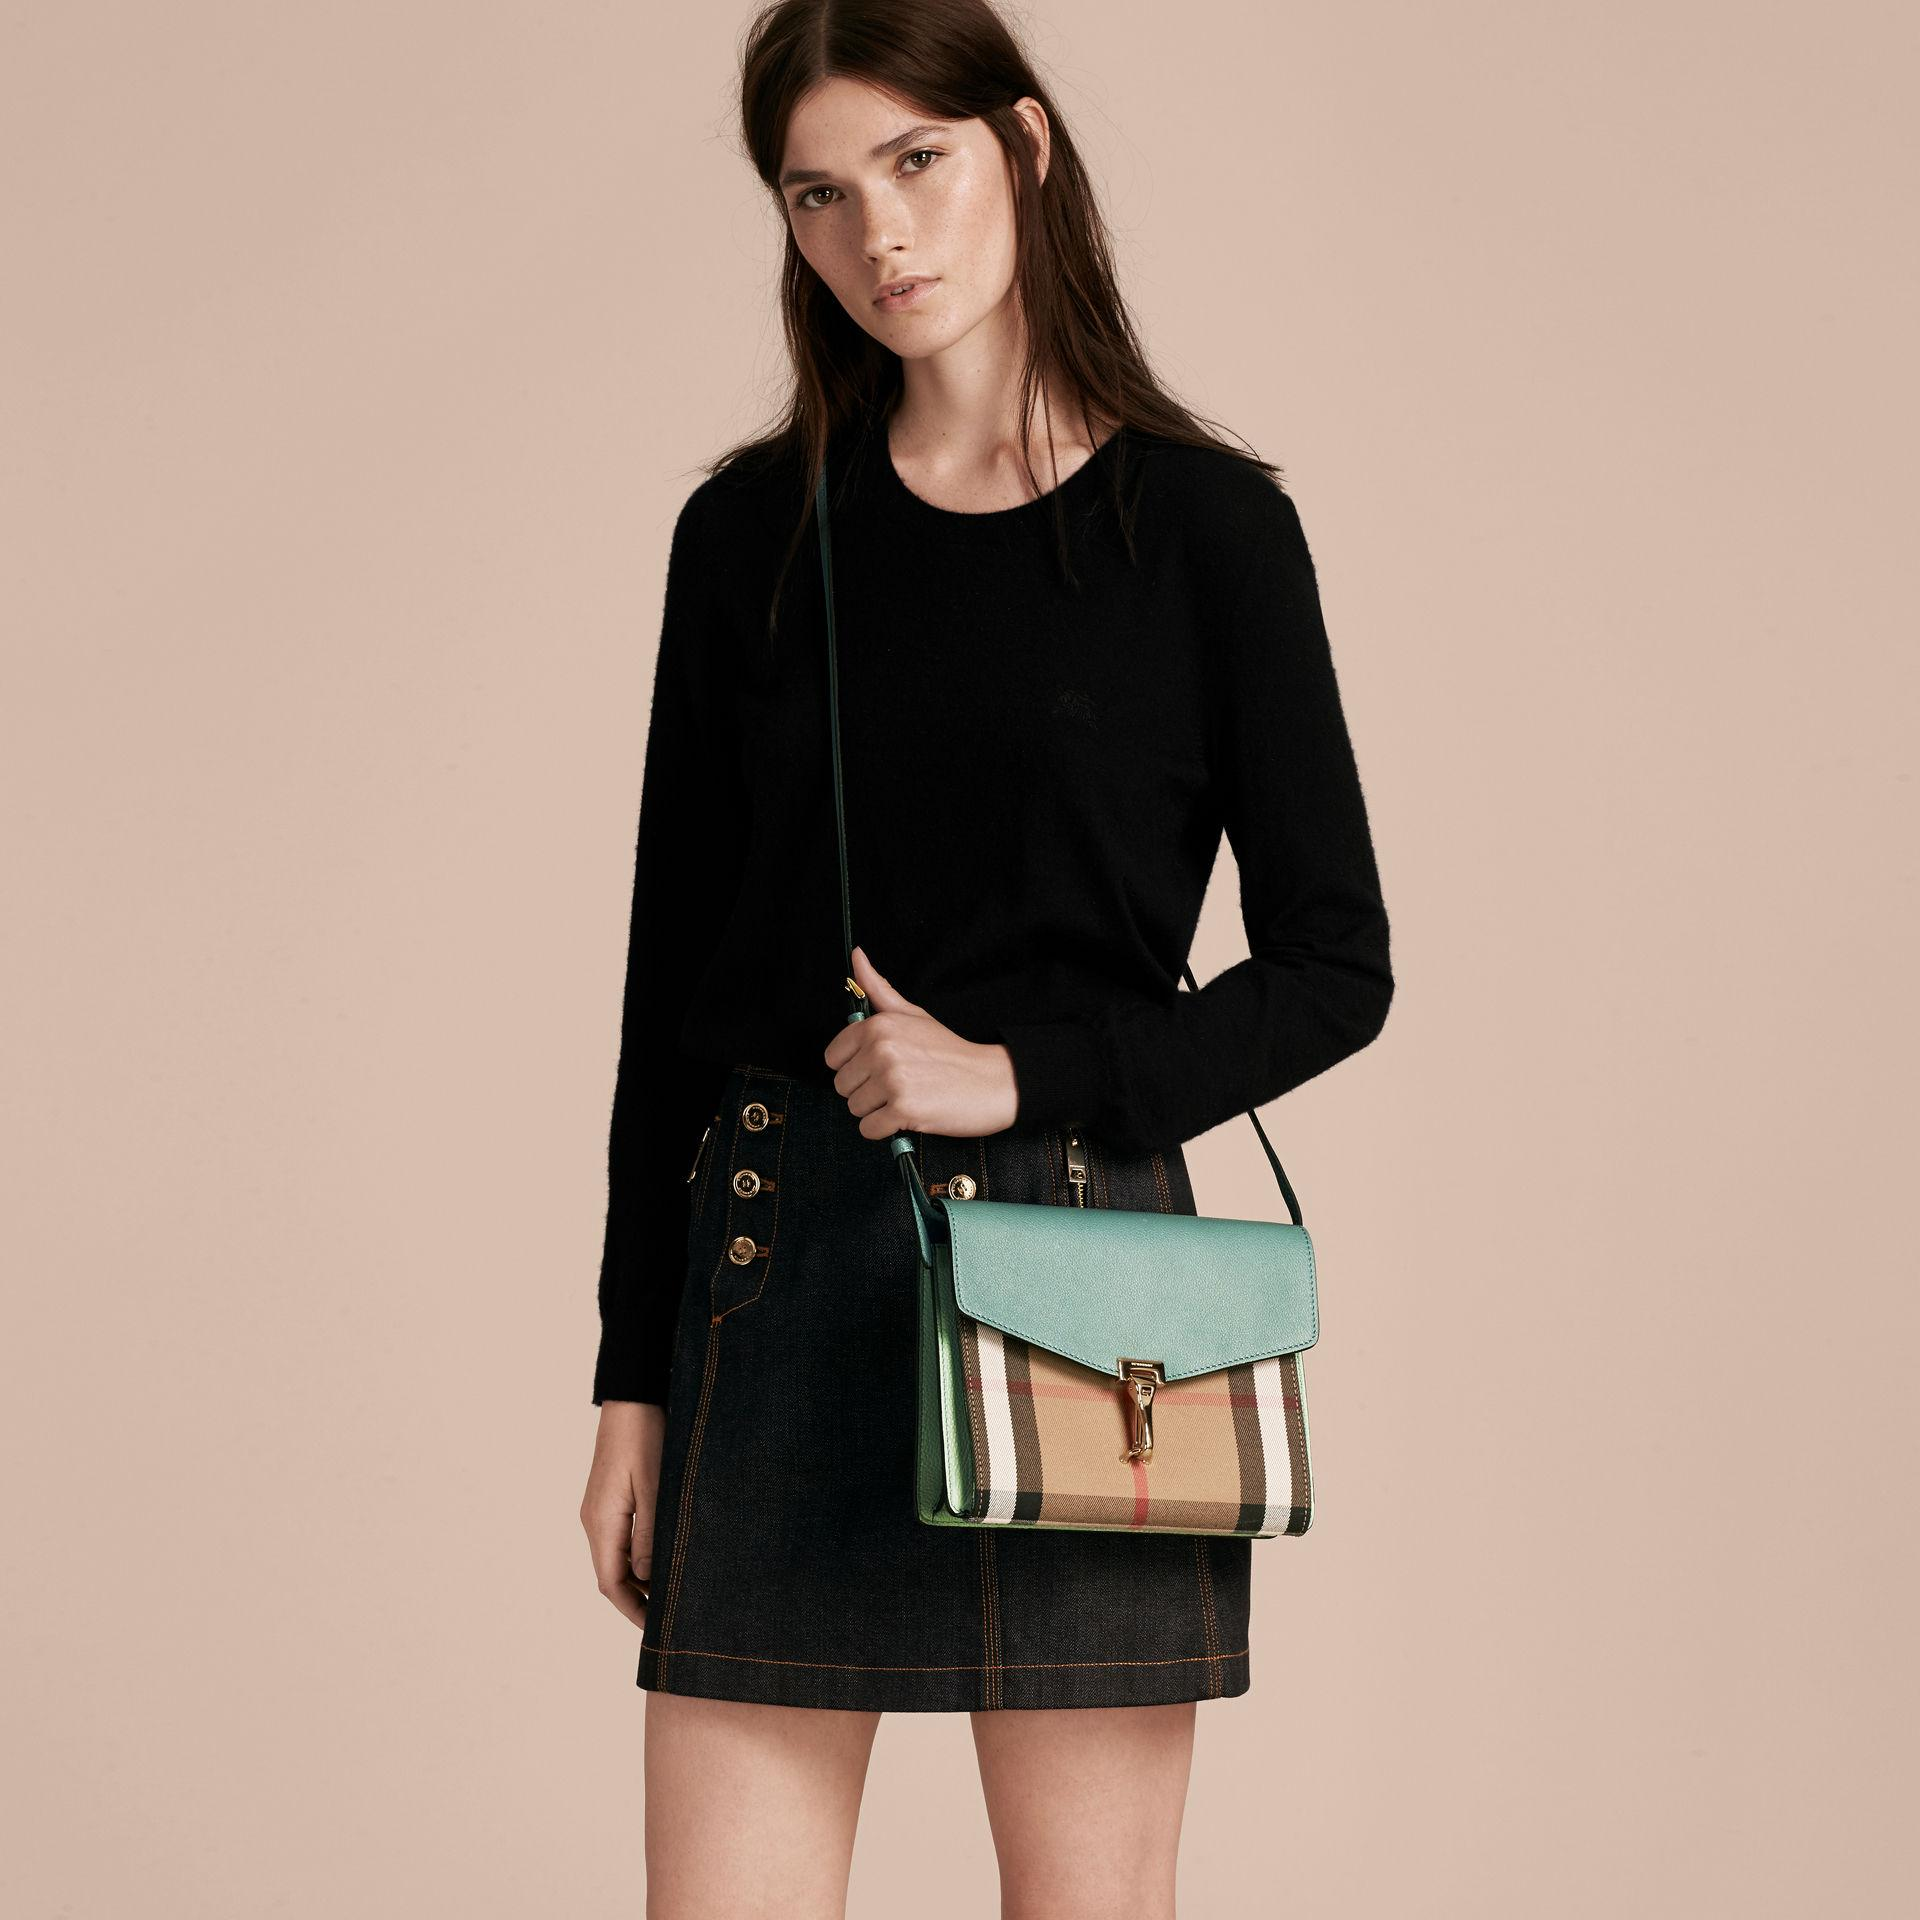 Lyst - Burberry Small Leather And House Check Crossbody Bag Celadon Blue in  Blue 435ddb1e0c74d